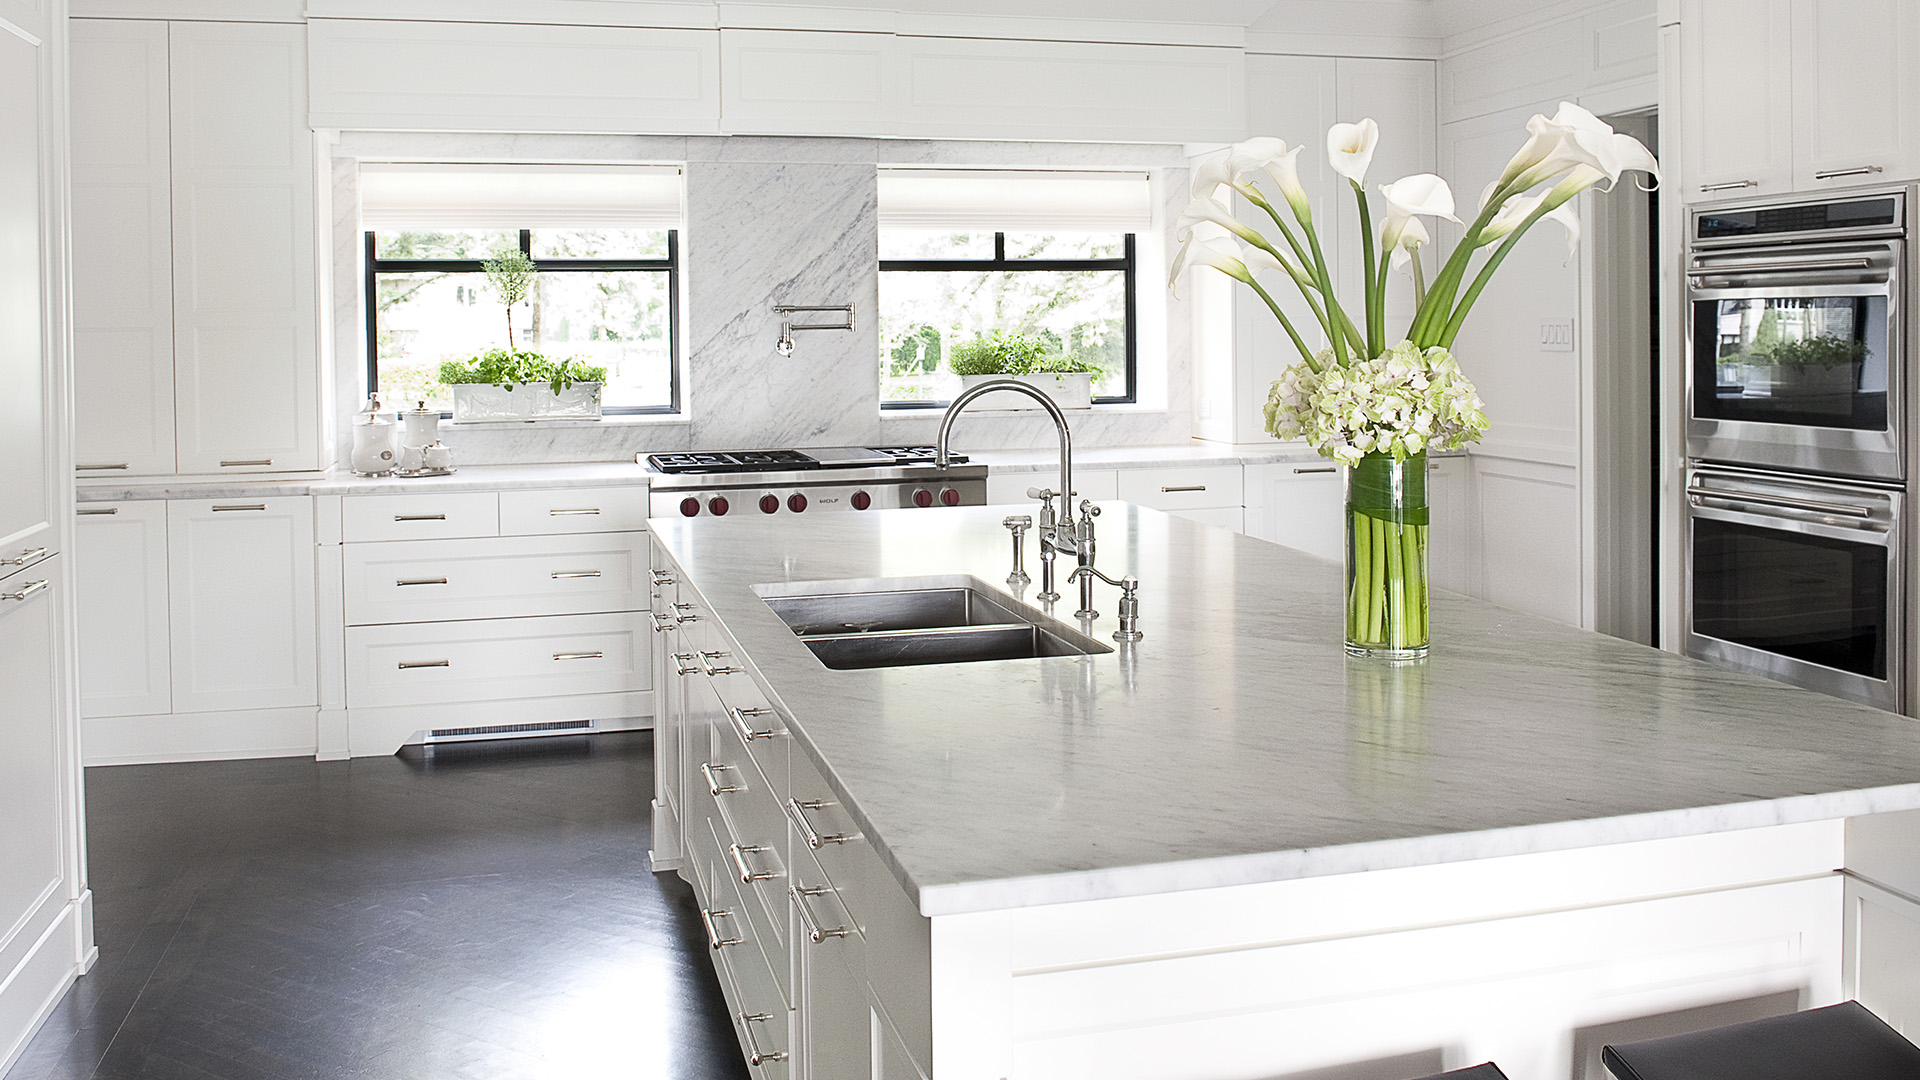 Home Refinements Prochef Sinks And Accessories Julien